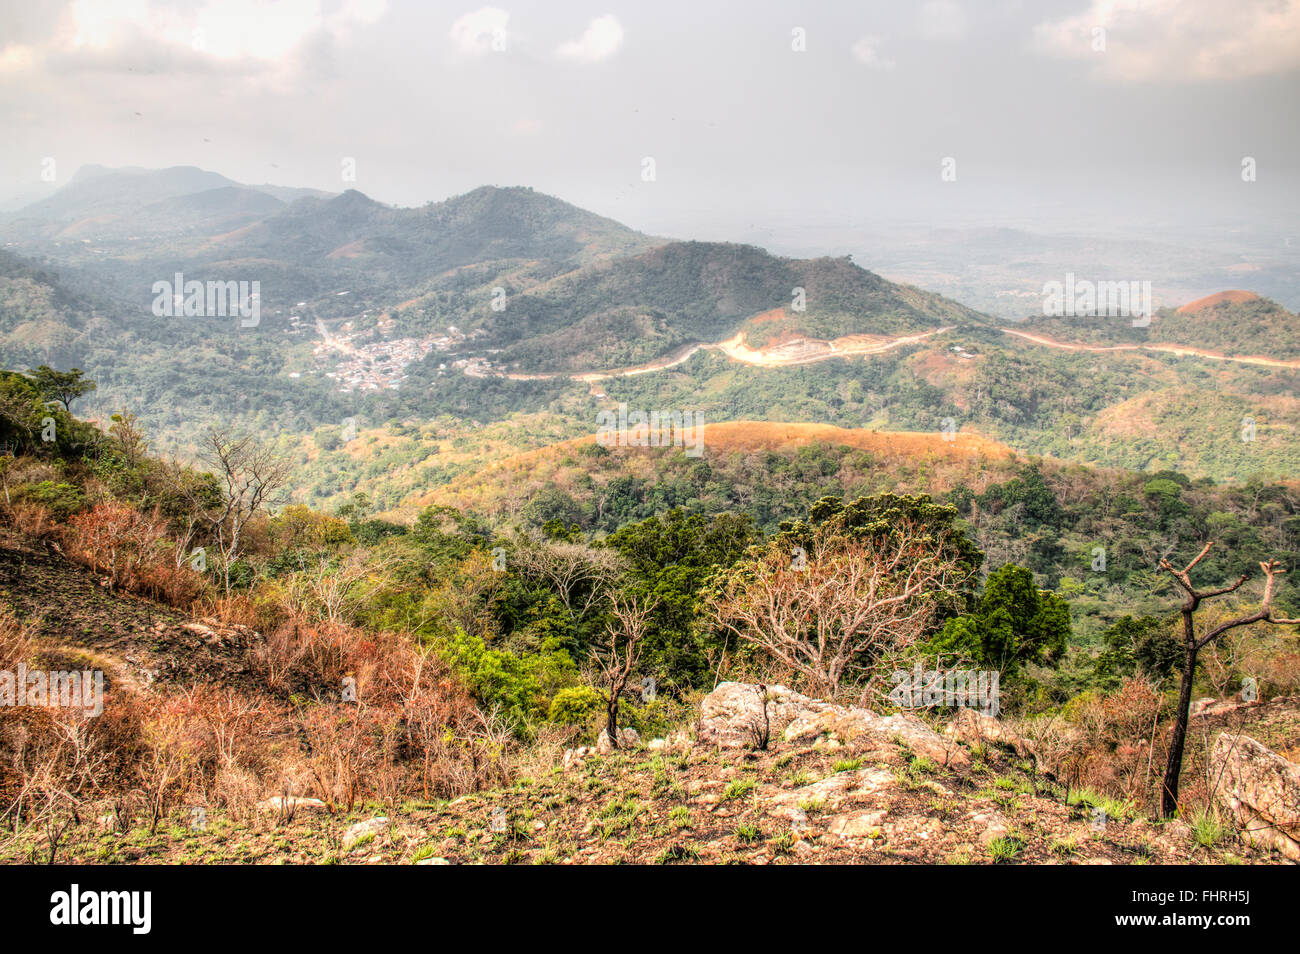 Beautiful landscape in the mountains in Amedzofe in the Volta Region, Ghana - Stock Image